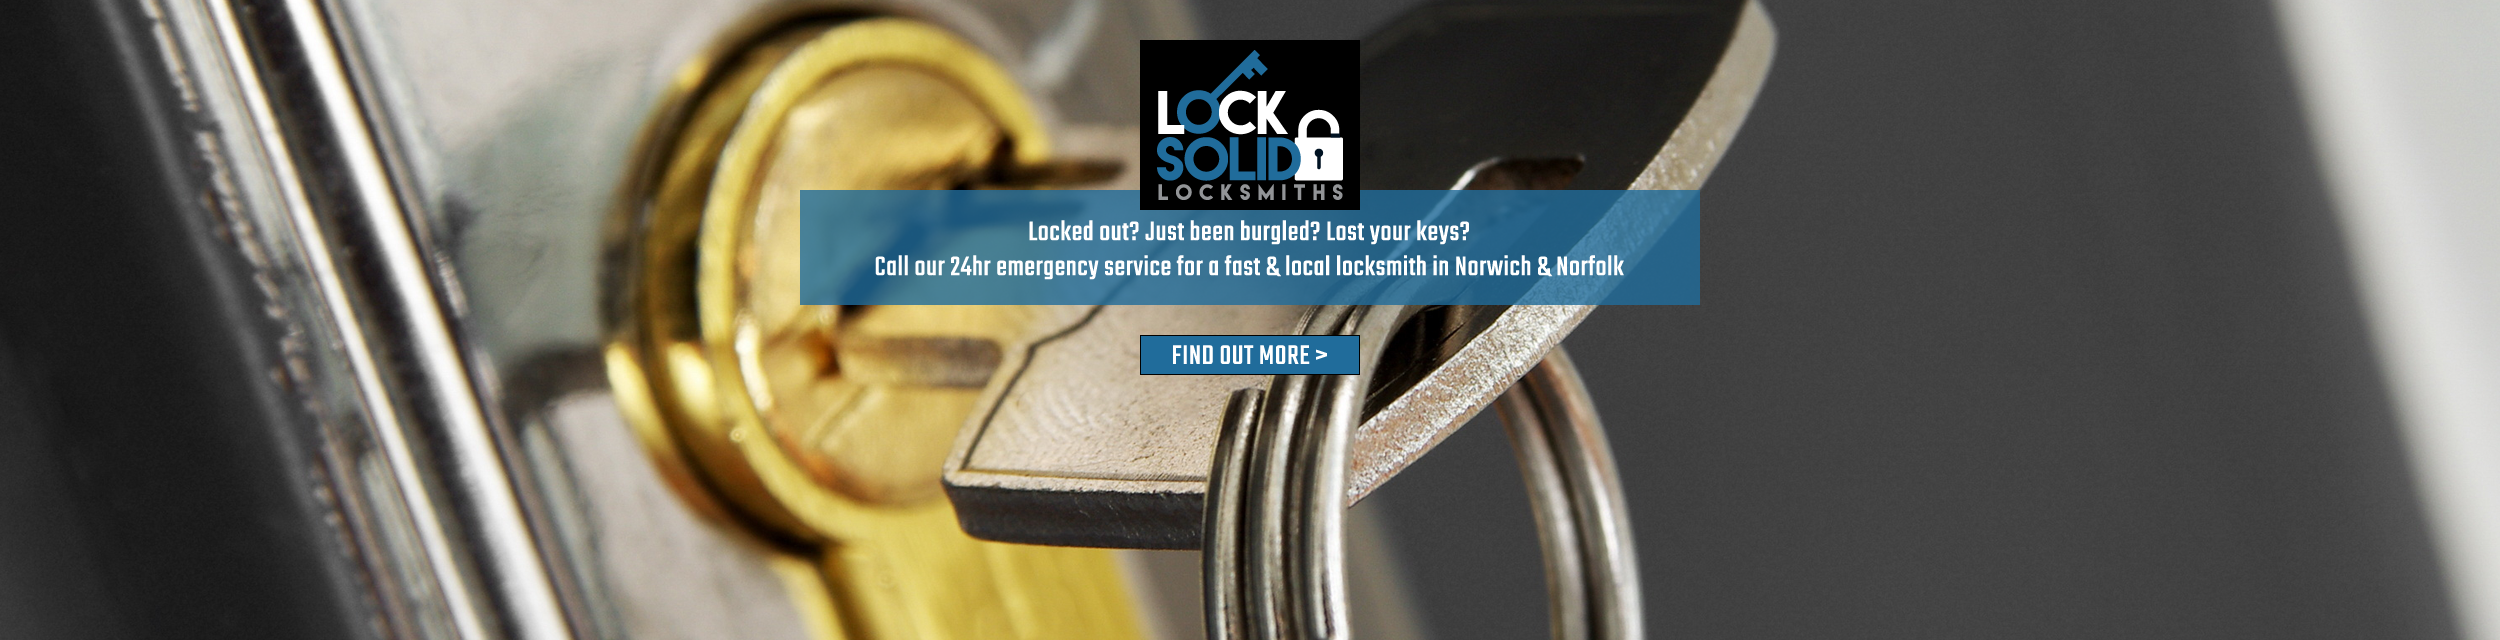 emergency-locksmiths-banner